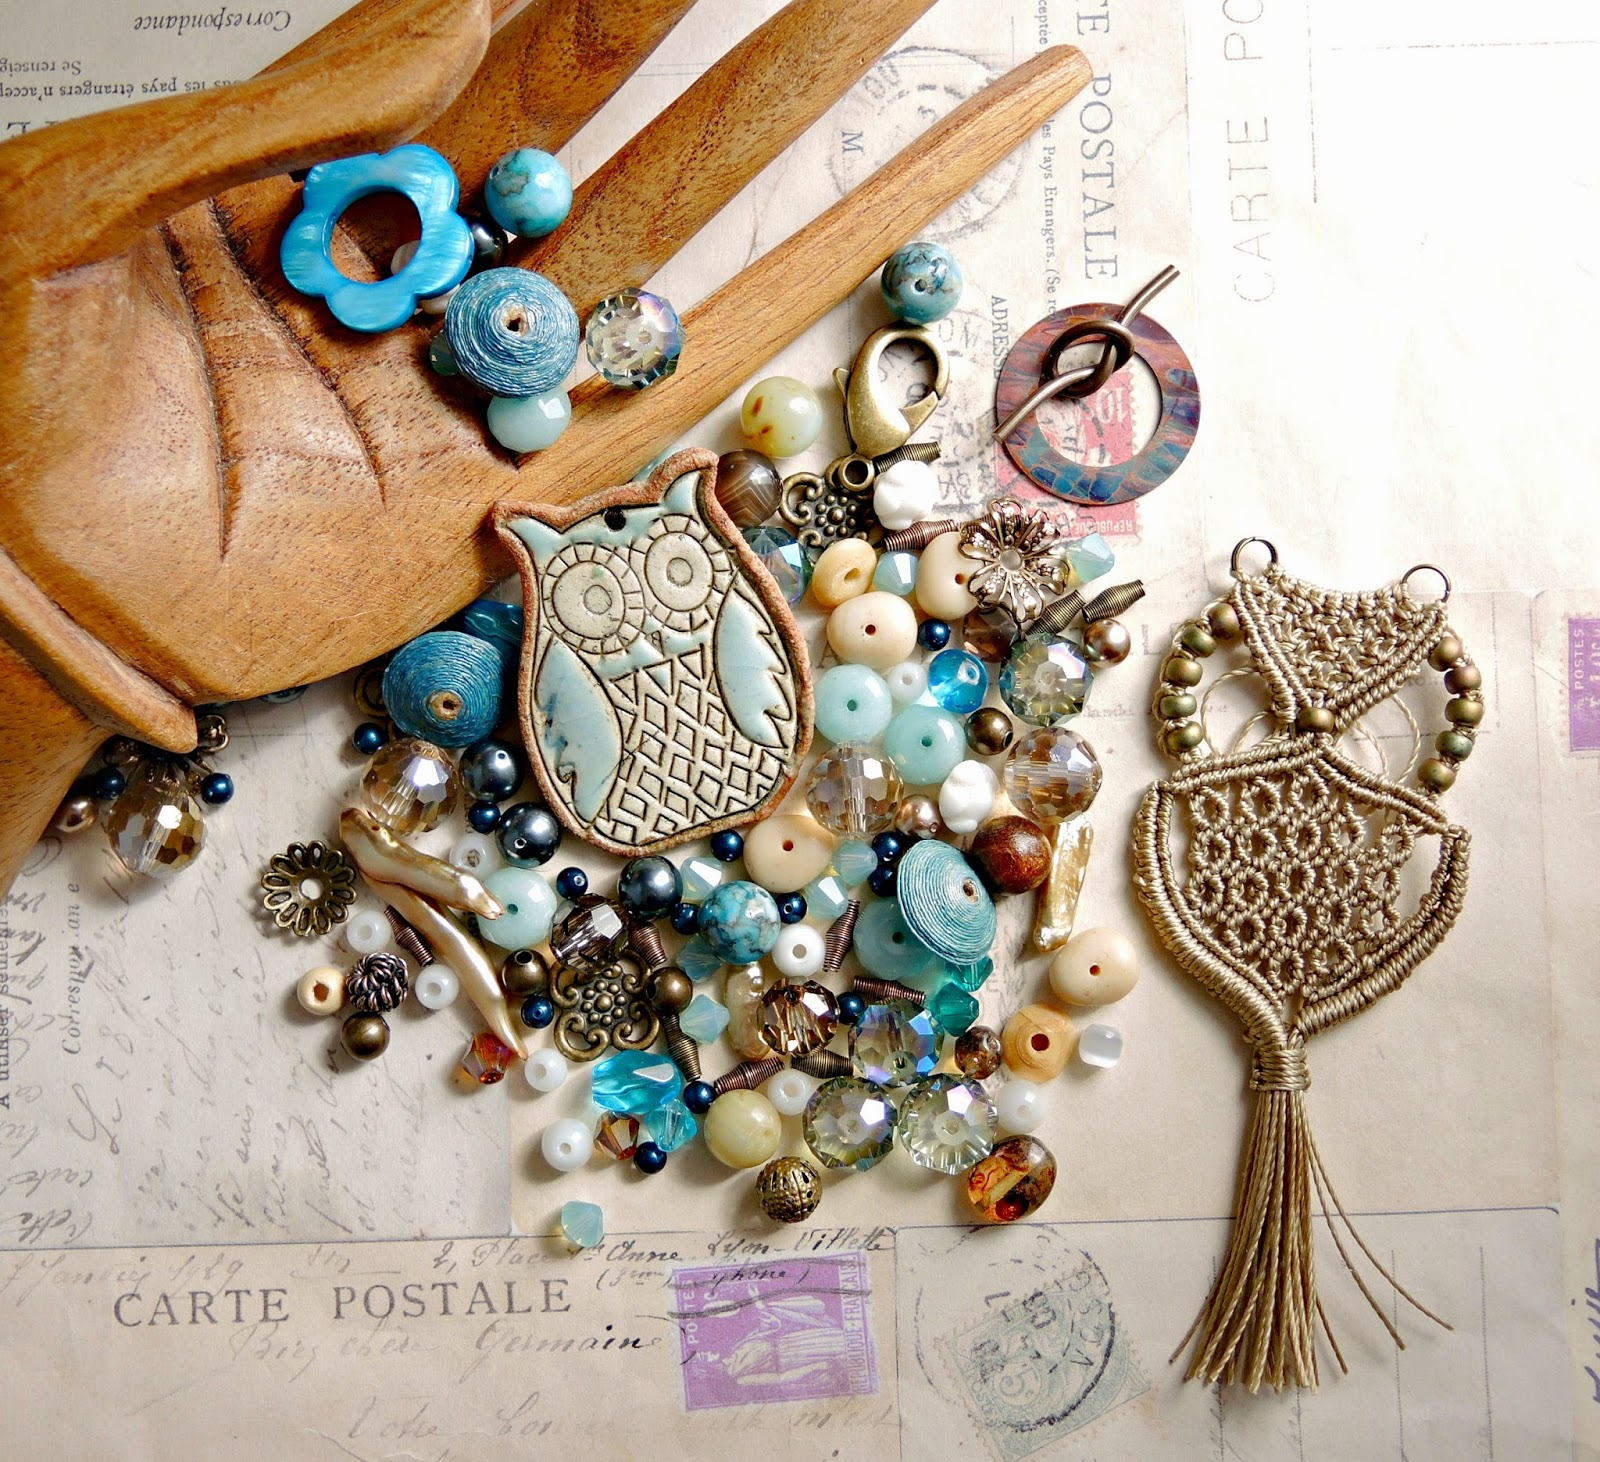 Bead Soup with ceramic owl and micro macrame owl from Sherri Stokey